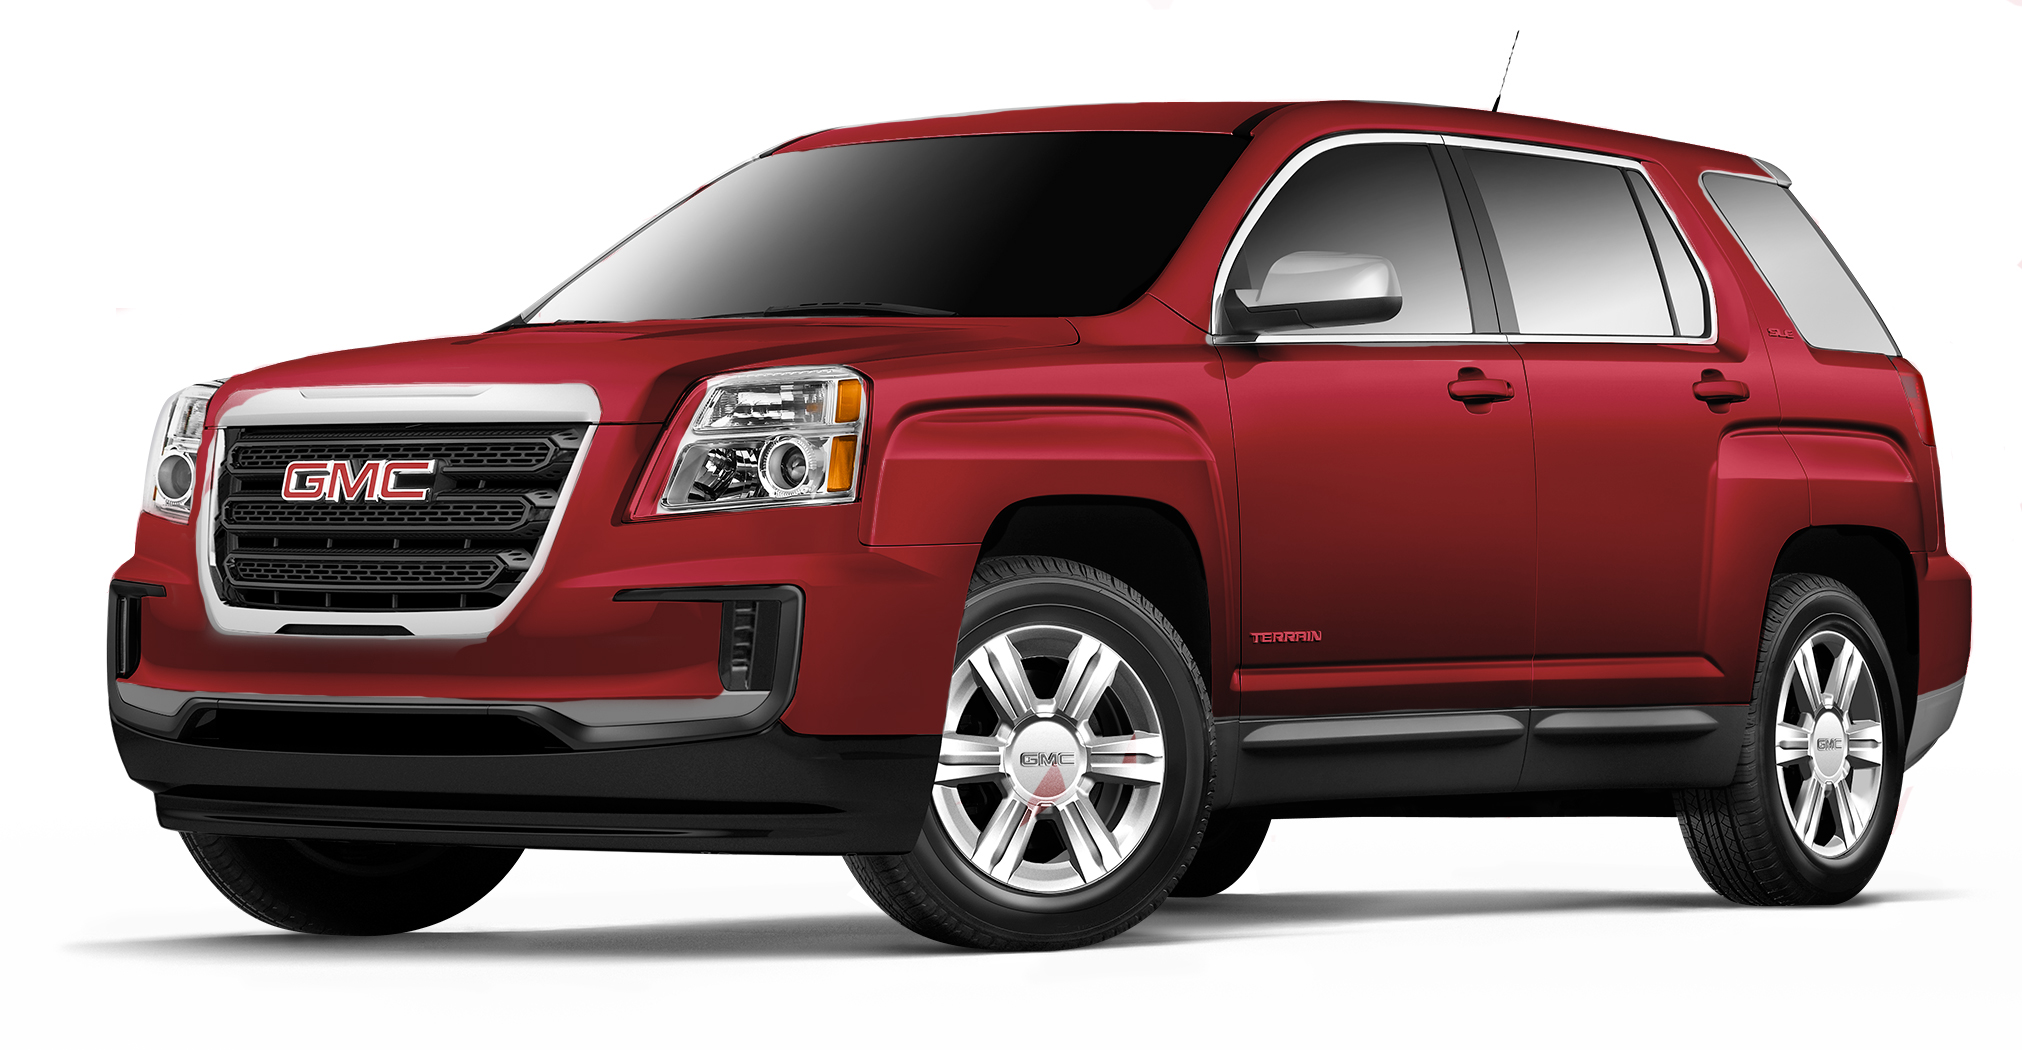 2017 GMC Terrain Winnipeg Crimson